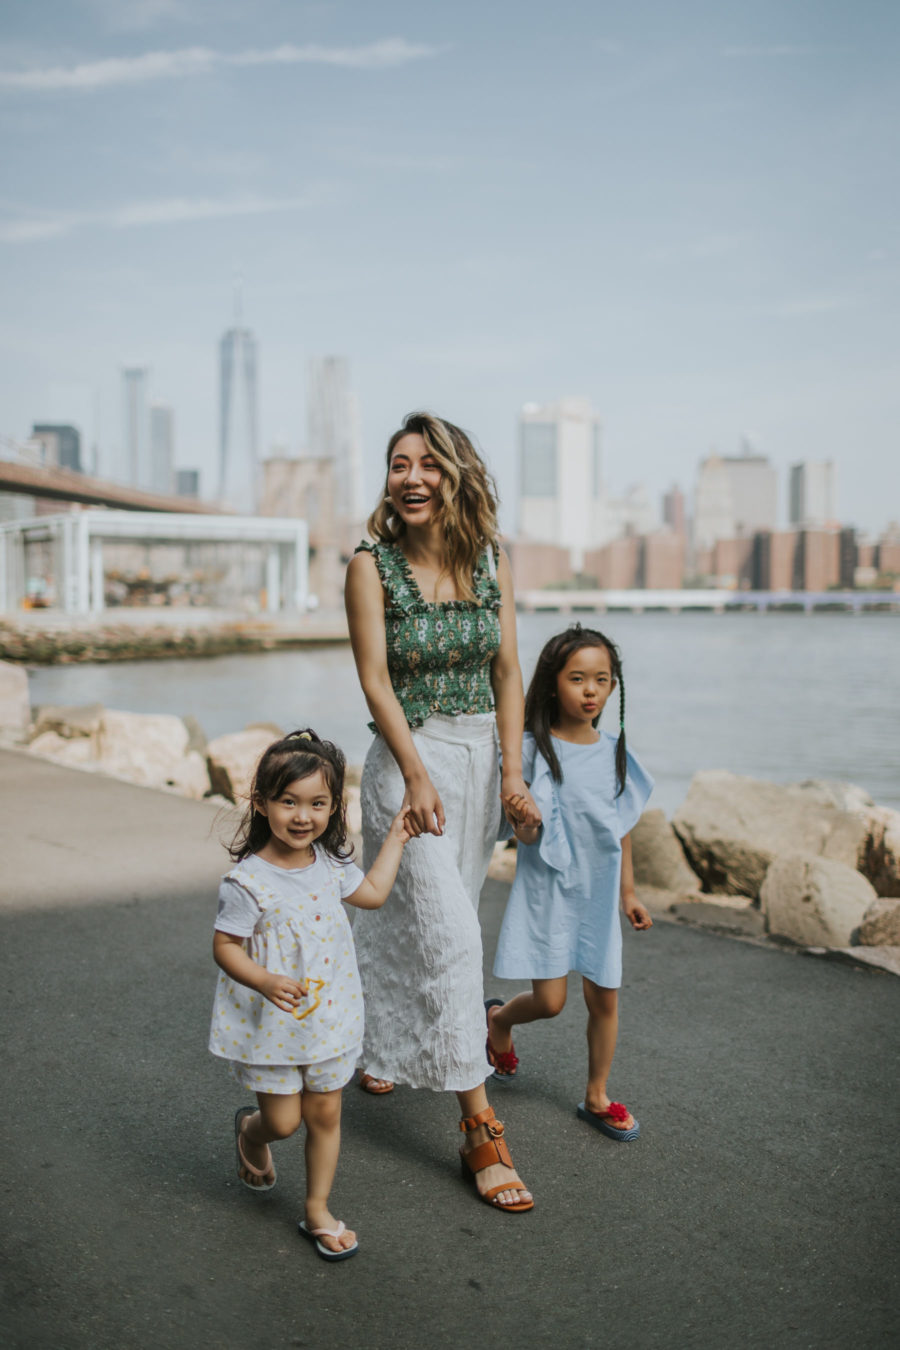 How I Spent My Memorial Day Weekend - smocked top, wrap skirt, summer outfit, casual summer outfit, summer fun // Notjessfashion.com